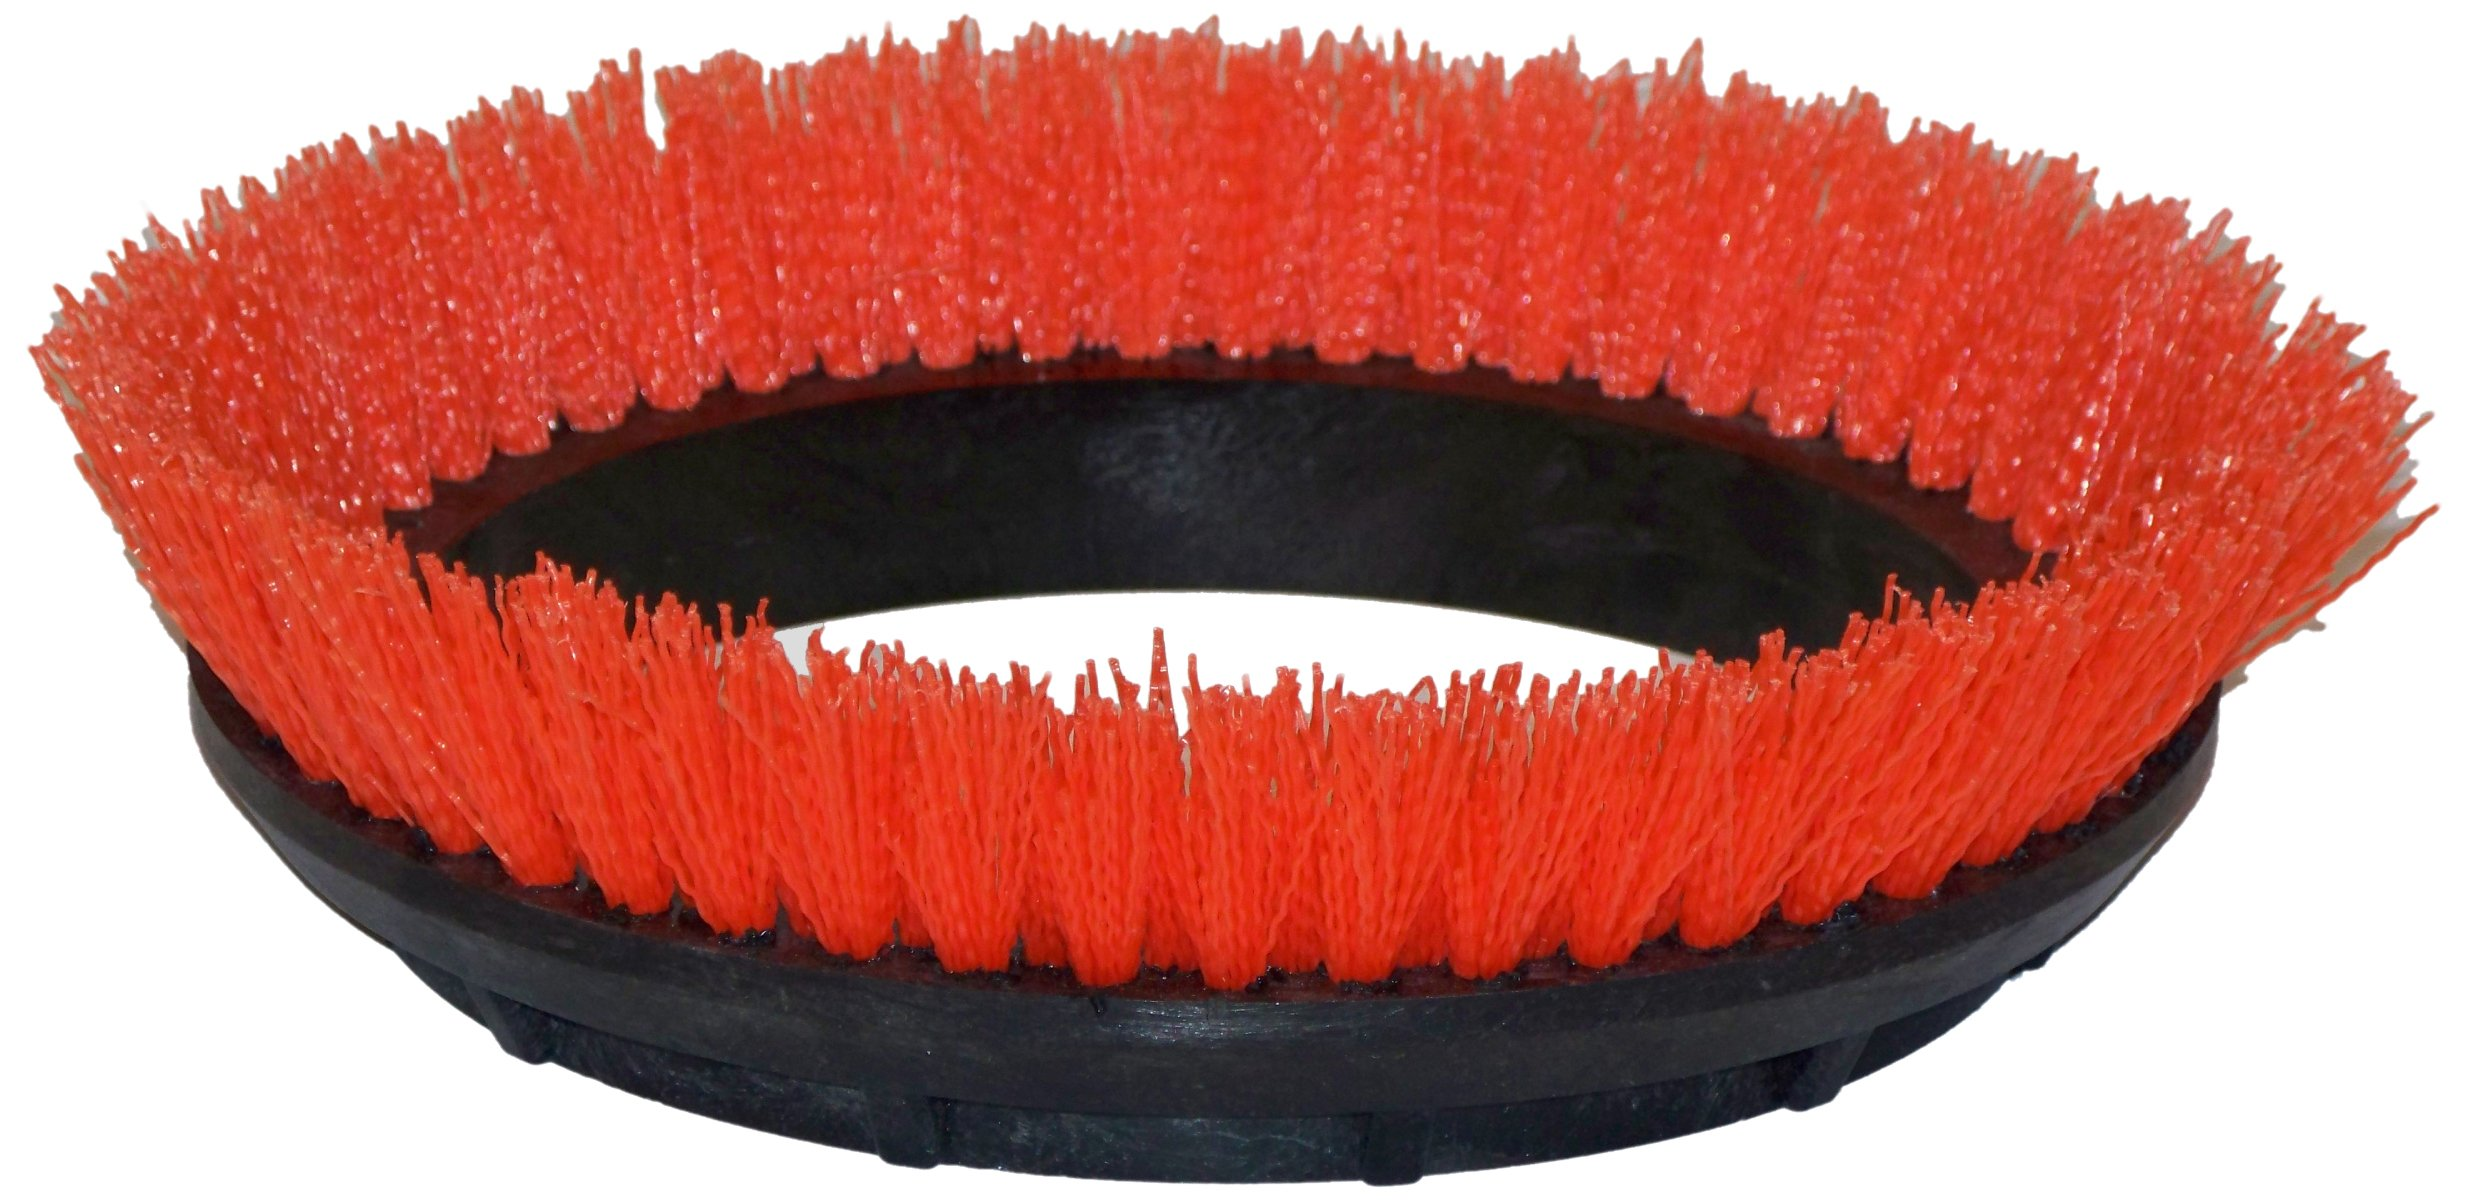 Oreck Commercial 237047 Crimped Polypropylene Scrub Orbiter Brush, 10.5'' Diameter, 0.028'' Bristle Diameter, For ORB550MC Orbiter Floor Machine(Colors may vary) by Oreck Commercial